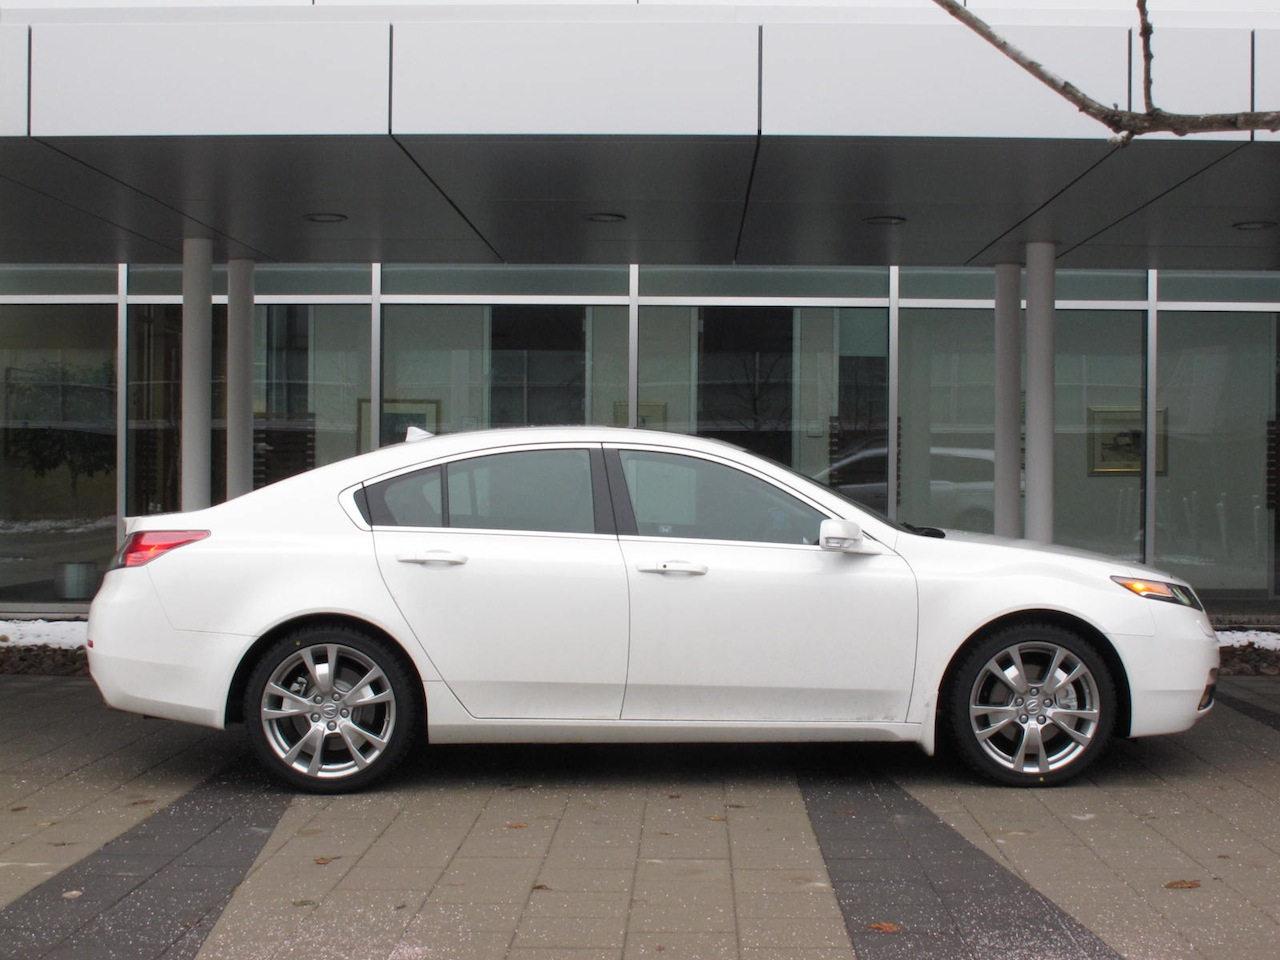 acura vsa html with 2012 Acura Tl Sh Awd on 2012 Acura TL SH AWD likewise Acura 32 Cl Type S 2003 besides 2006 Acura Tsx Fuse Box also 2014 W900l Kenworth For Sale furthermore 2014 Charger Rt Upgrades.